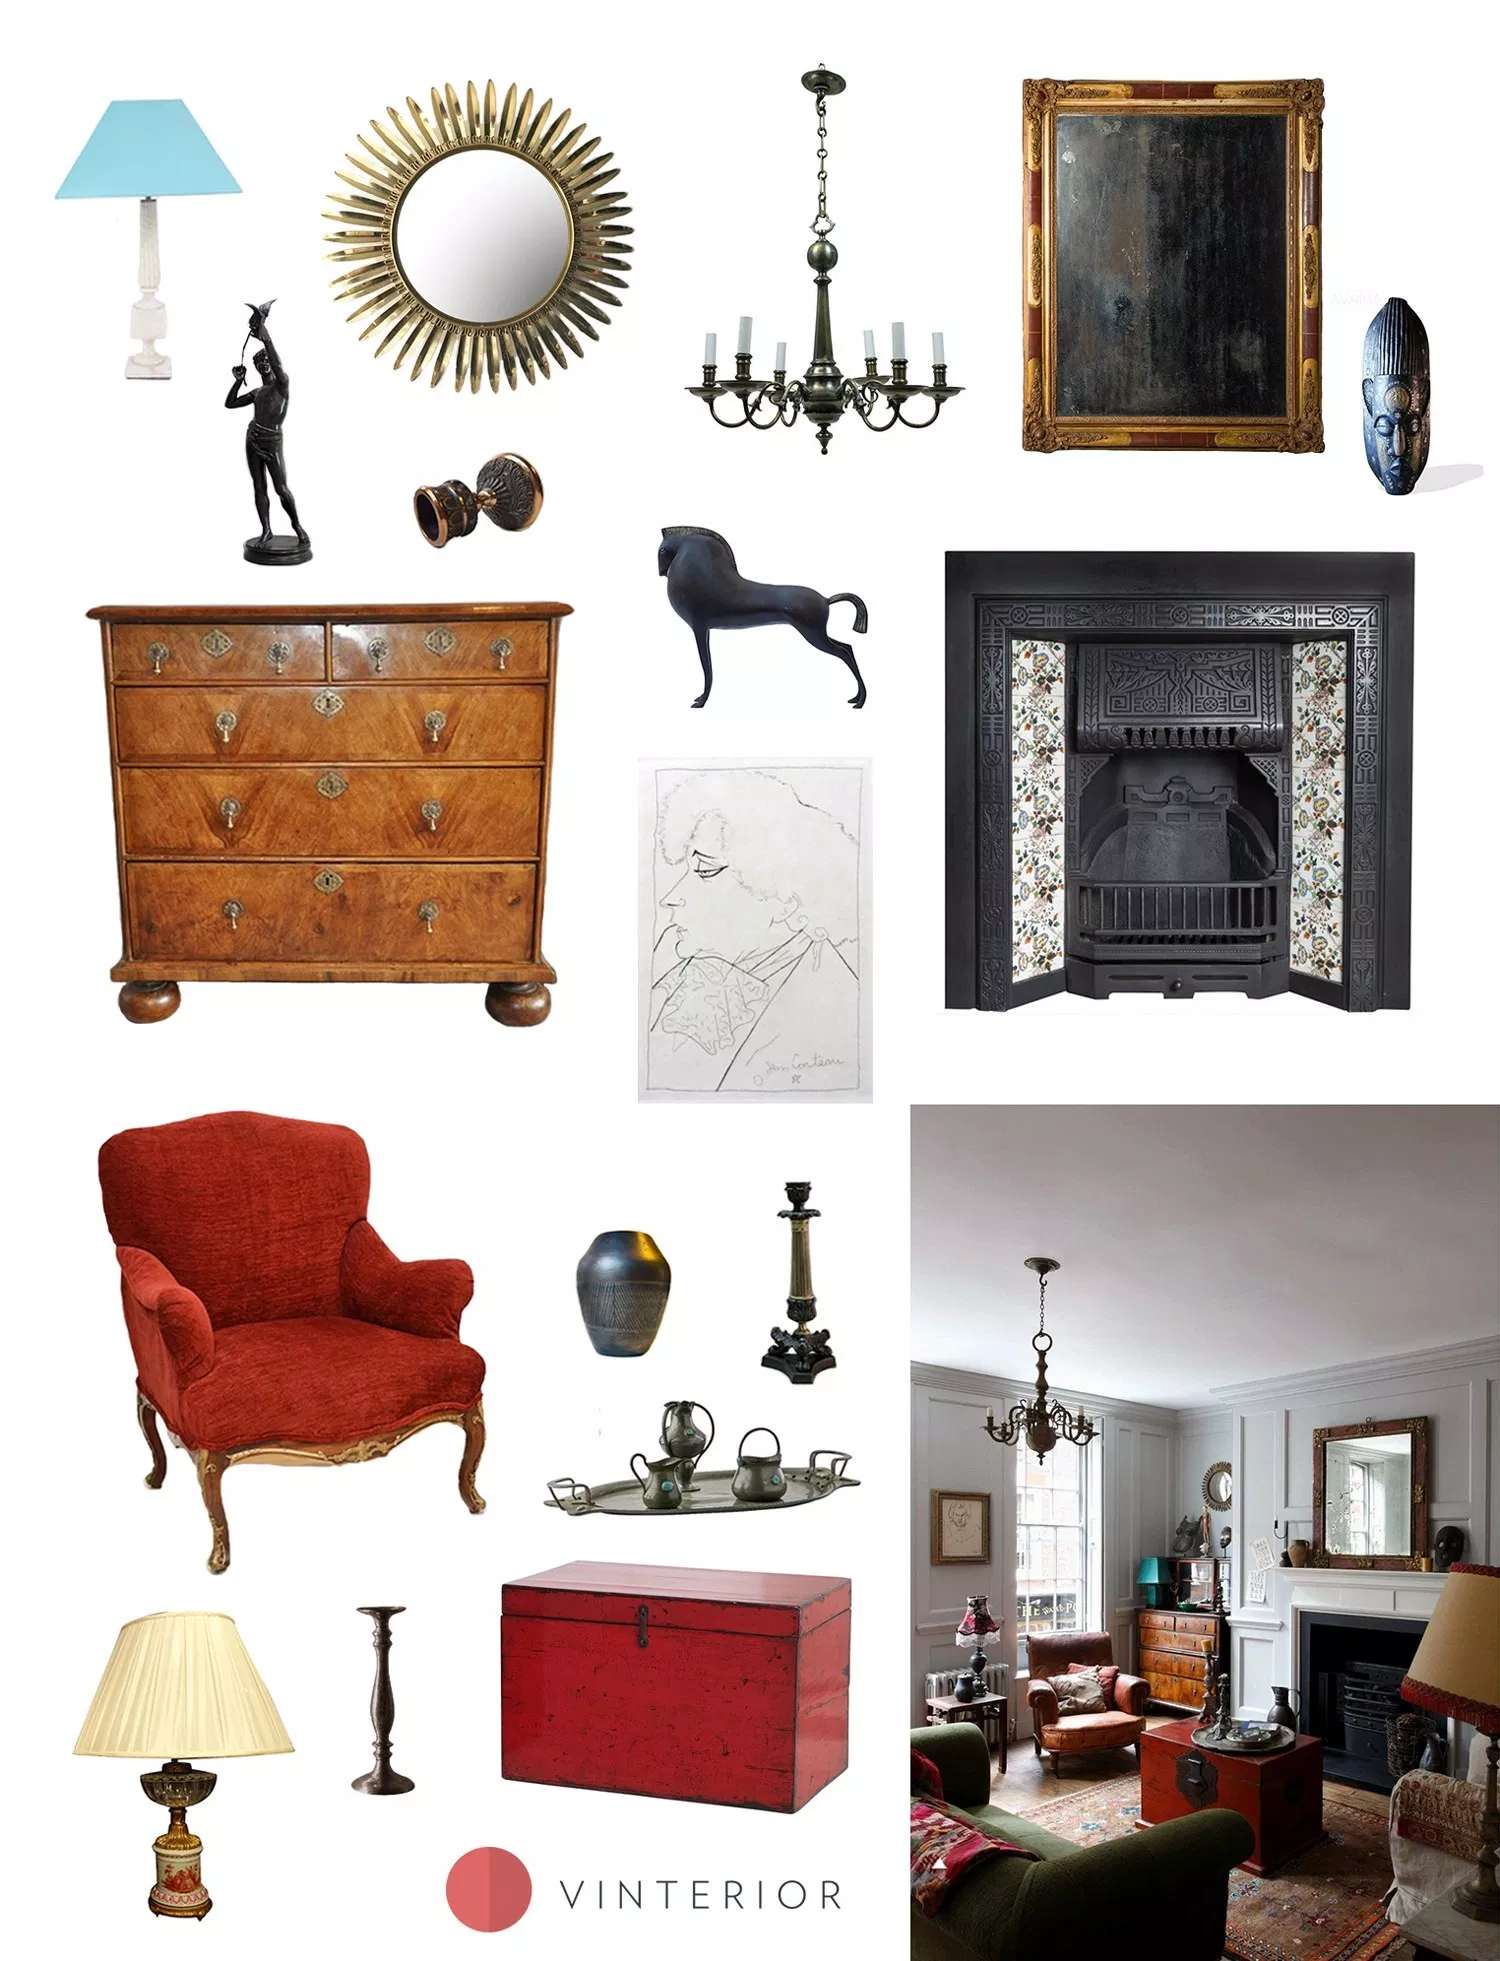 Design Your Own Room: Create Your Own Characterful Living Room With These